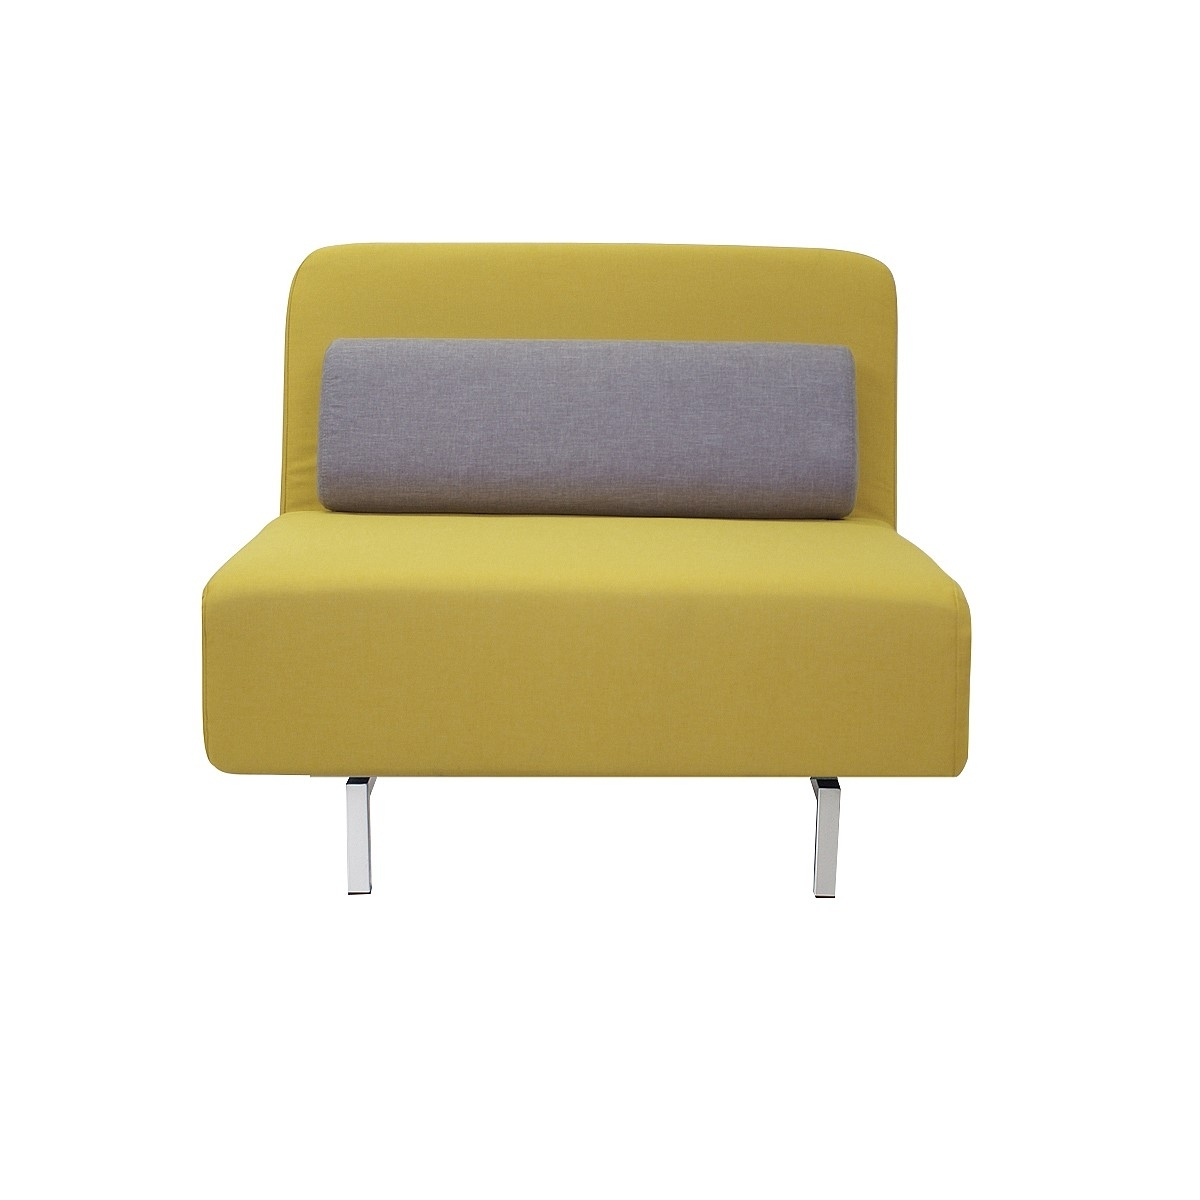 Muddler Sofa Bed - Yellow/grey | Sofas | Living | Nood Nz pertaining to Single Sofas (Image 5 of 10)